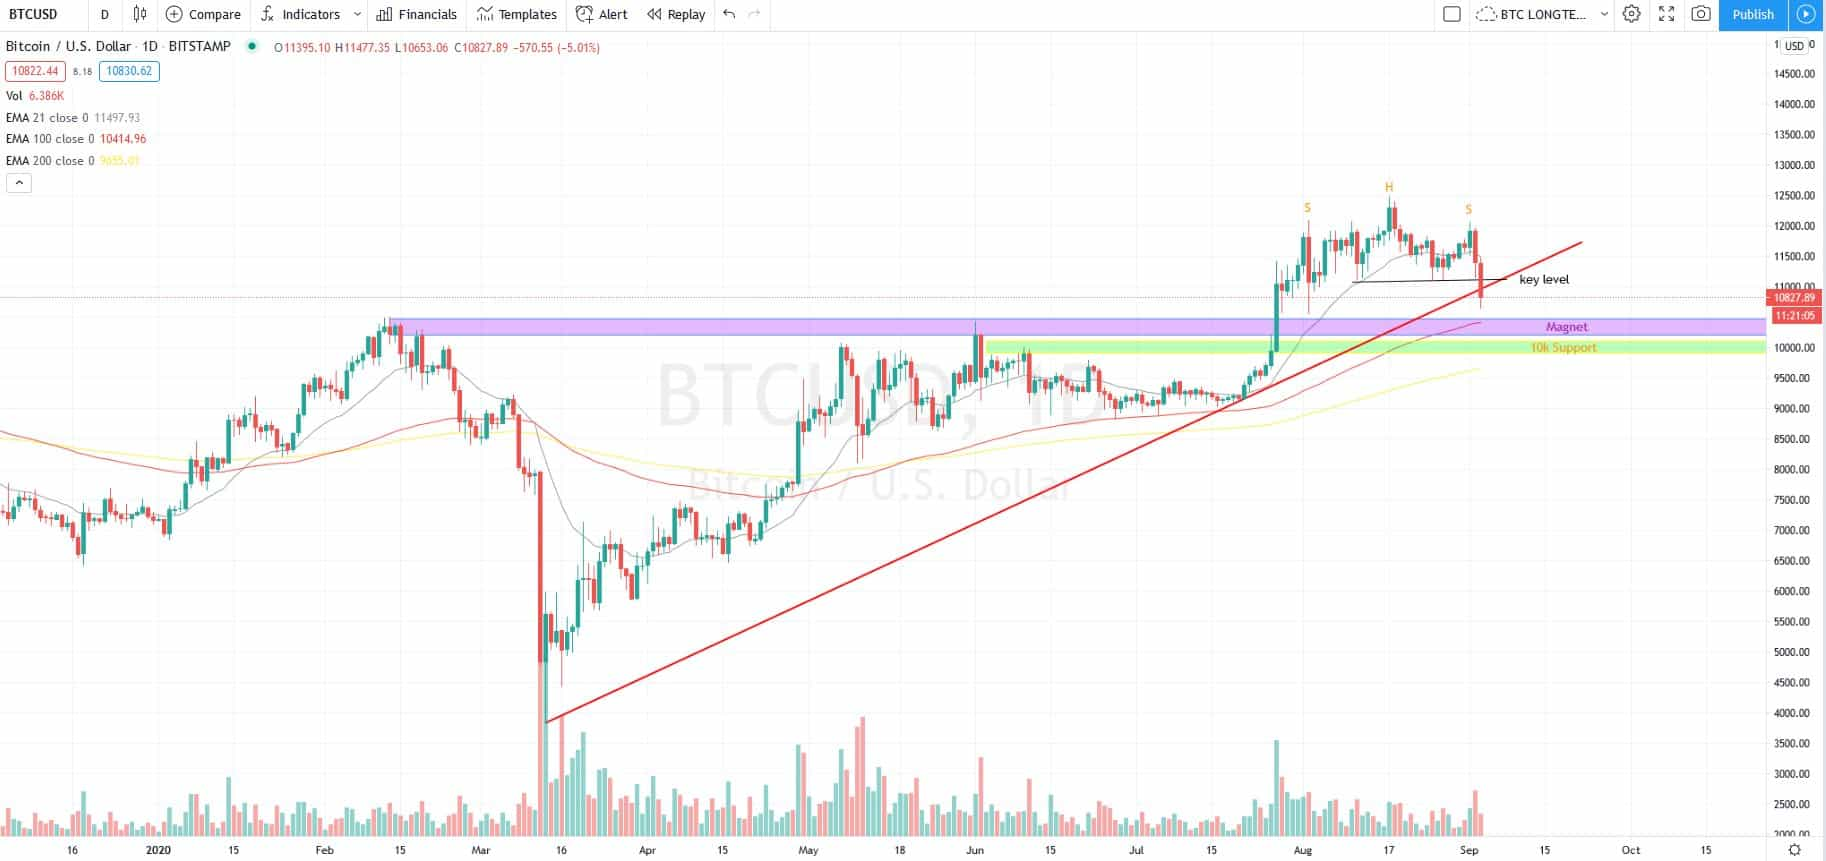 BTC/USD Chart. Source: Twitter